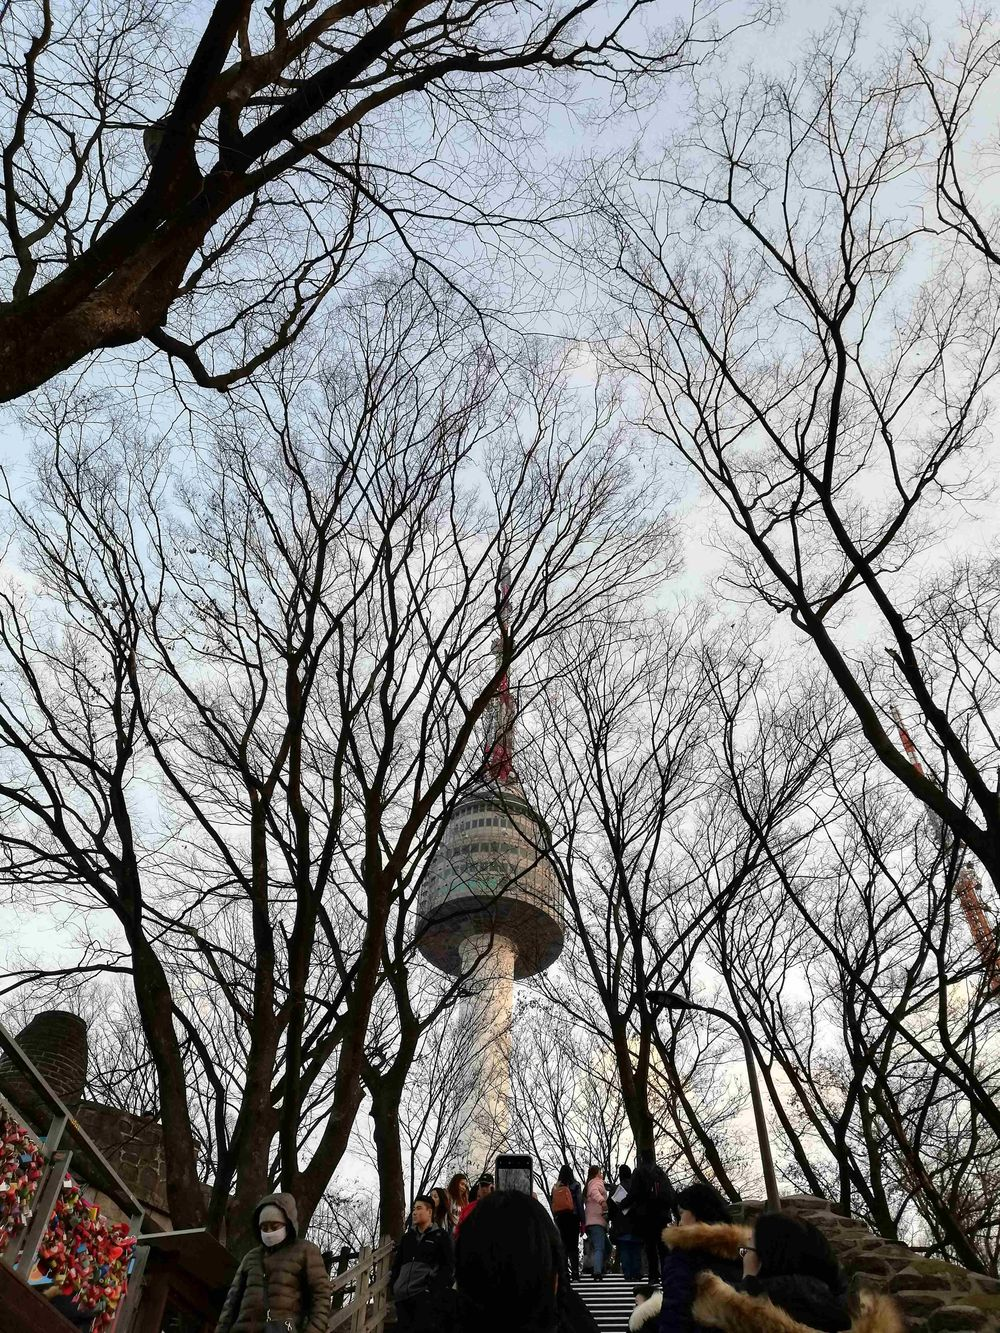 Random places in Seoul, South Korea - image 3 - student project